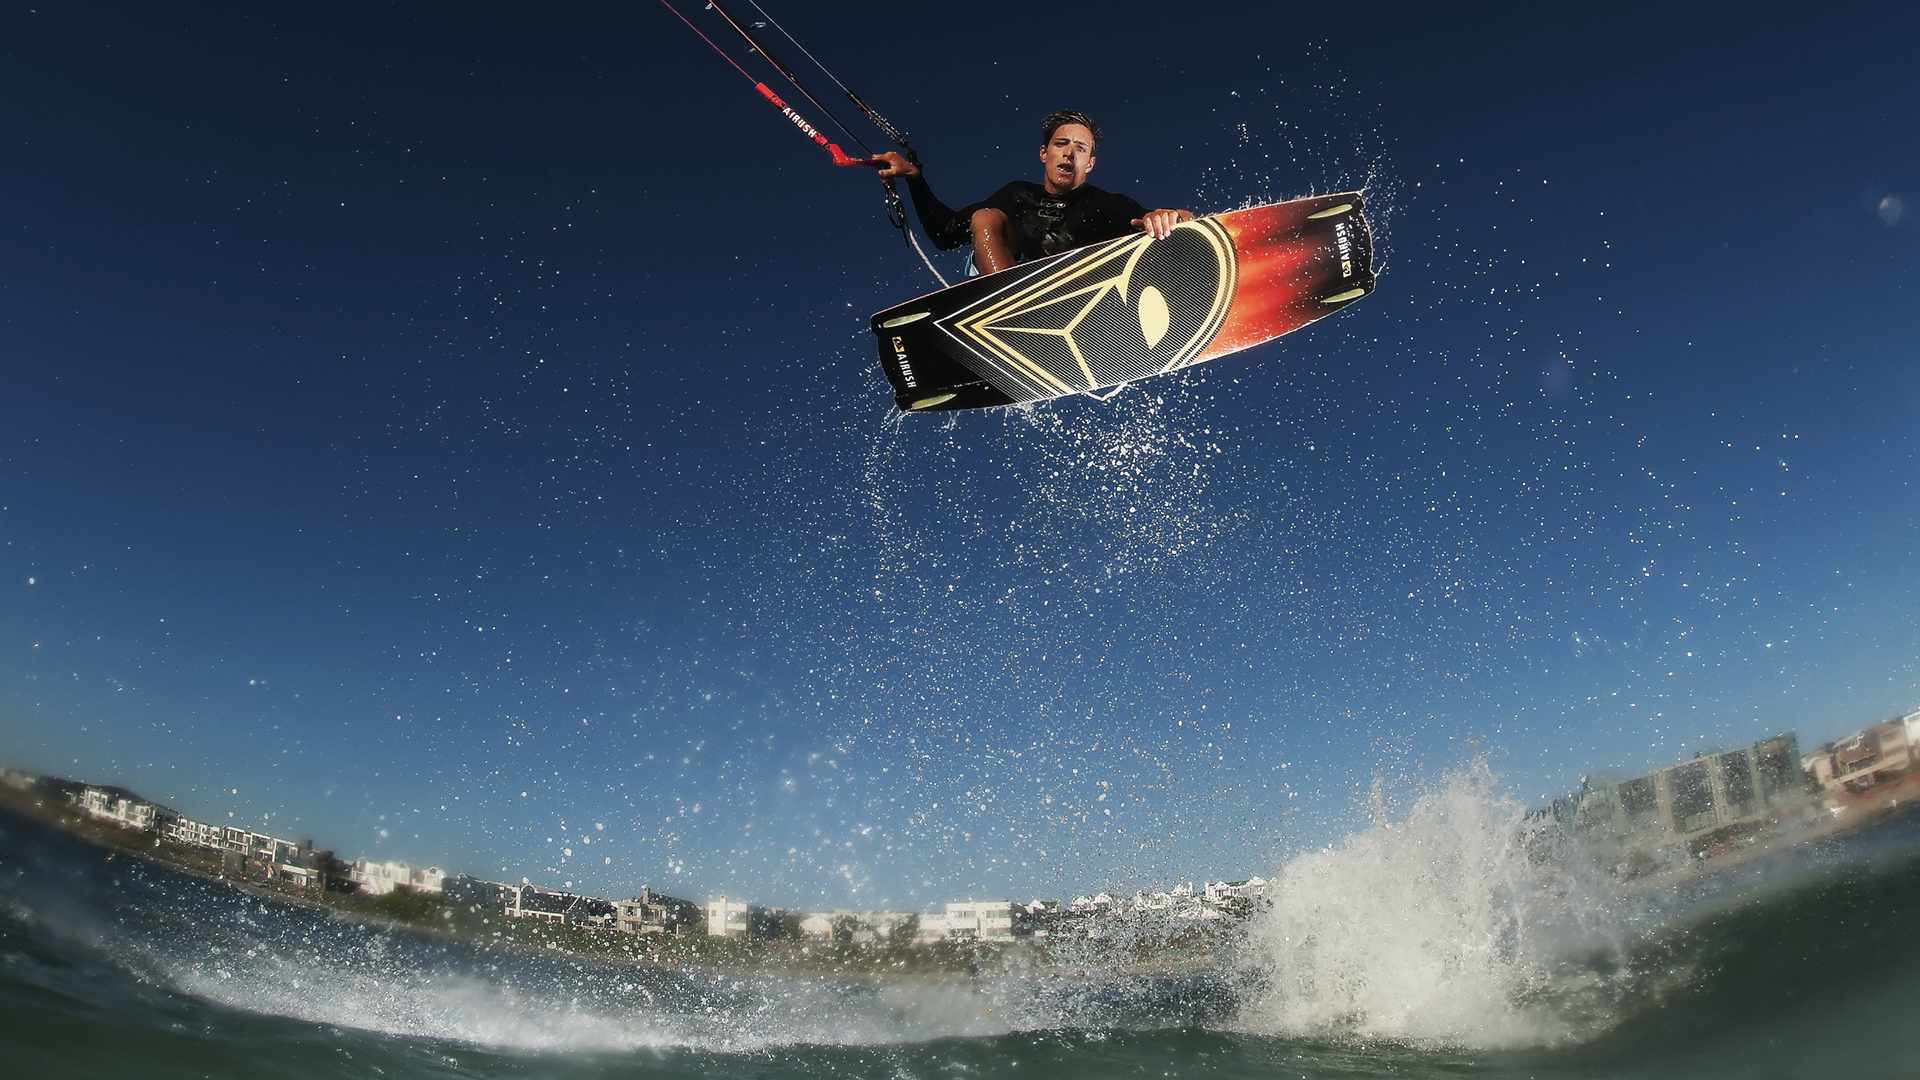 kitesurf wallpaper image - Oswald Smith with a nice Indie Grab at twilight - in resolution: High Definition - HD 16:9 1920 X 1080